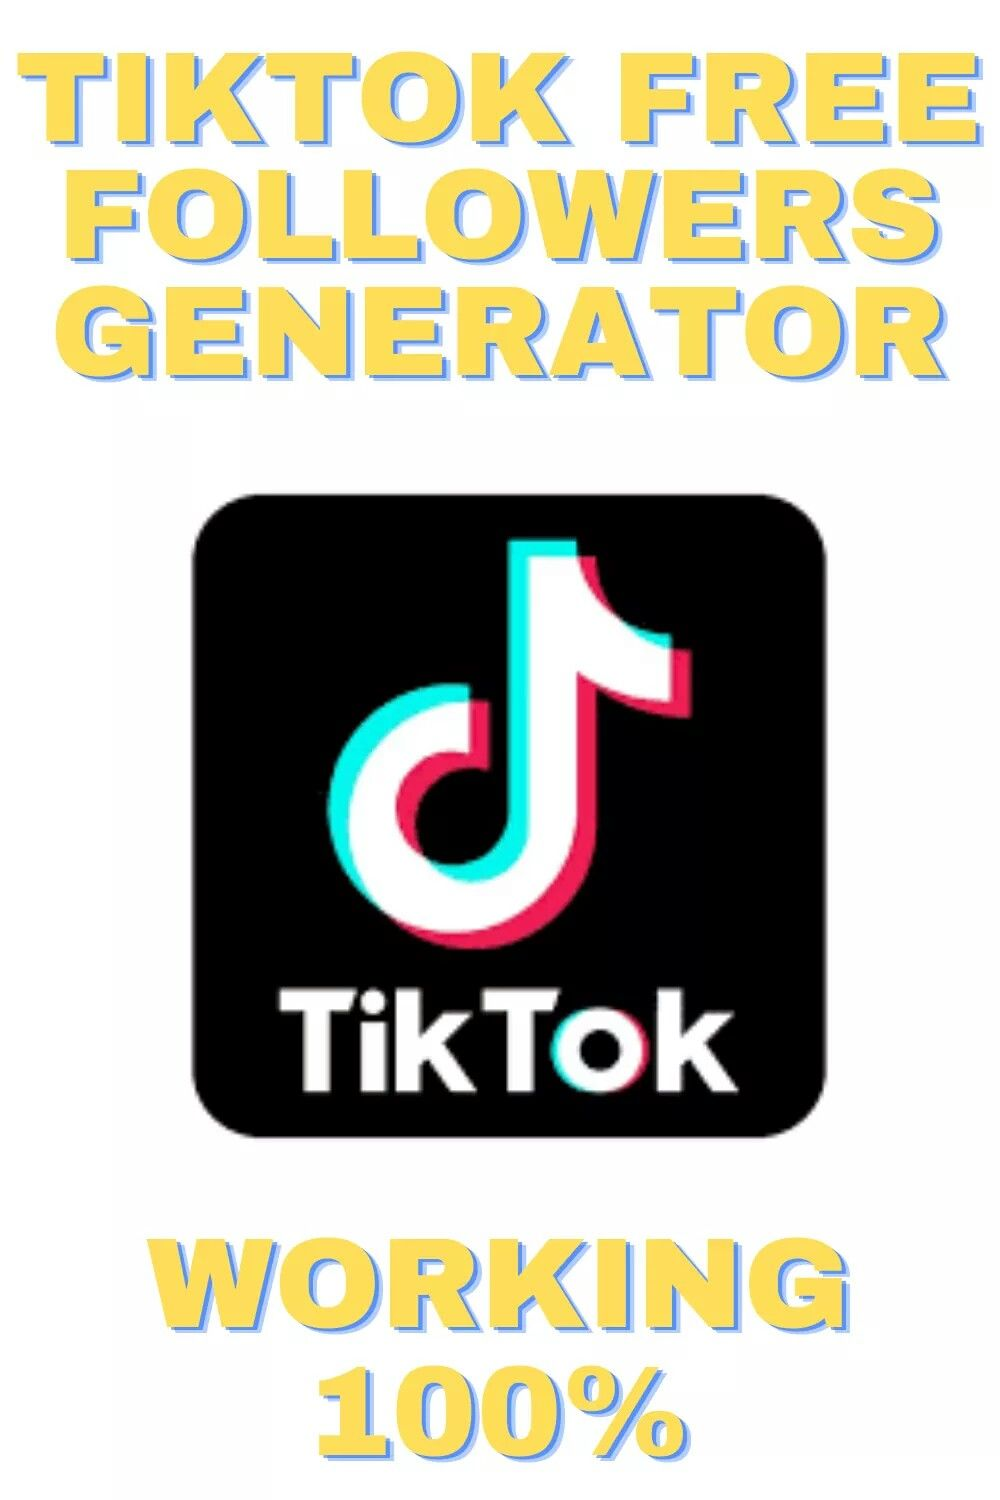 How To Get Free Tiktok Followers And Likes Generator Free Followers Get Instagram Followers How To Get Followers